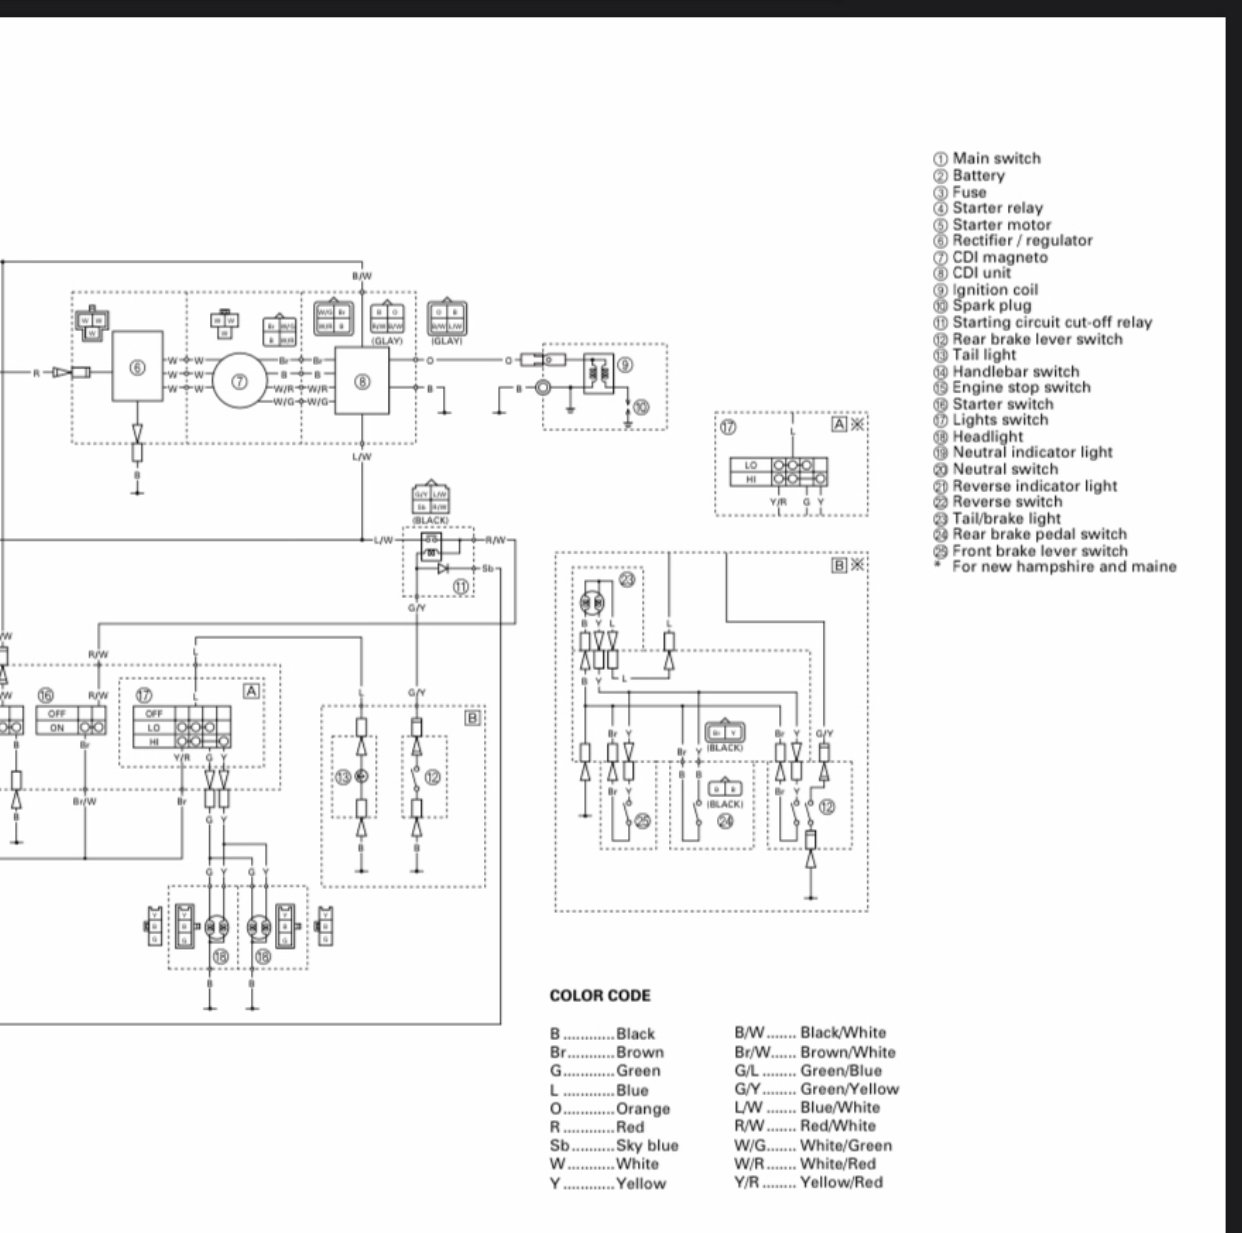 2001 Yamaha 250 Wiring Diagram - Wiring Diagram Recent lock-looting -  lock-looting.cosavedereanapoli.it | Bear Tracker Tail Light Wire Diagram 3 |  | lock-looting.cosavedereanapoli.it